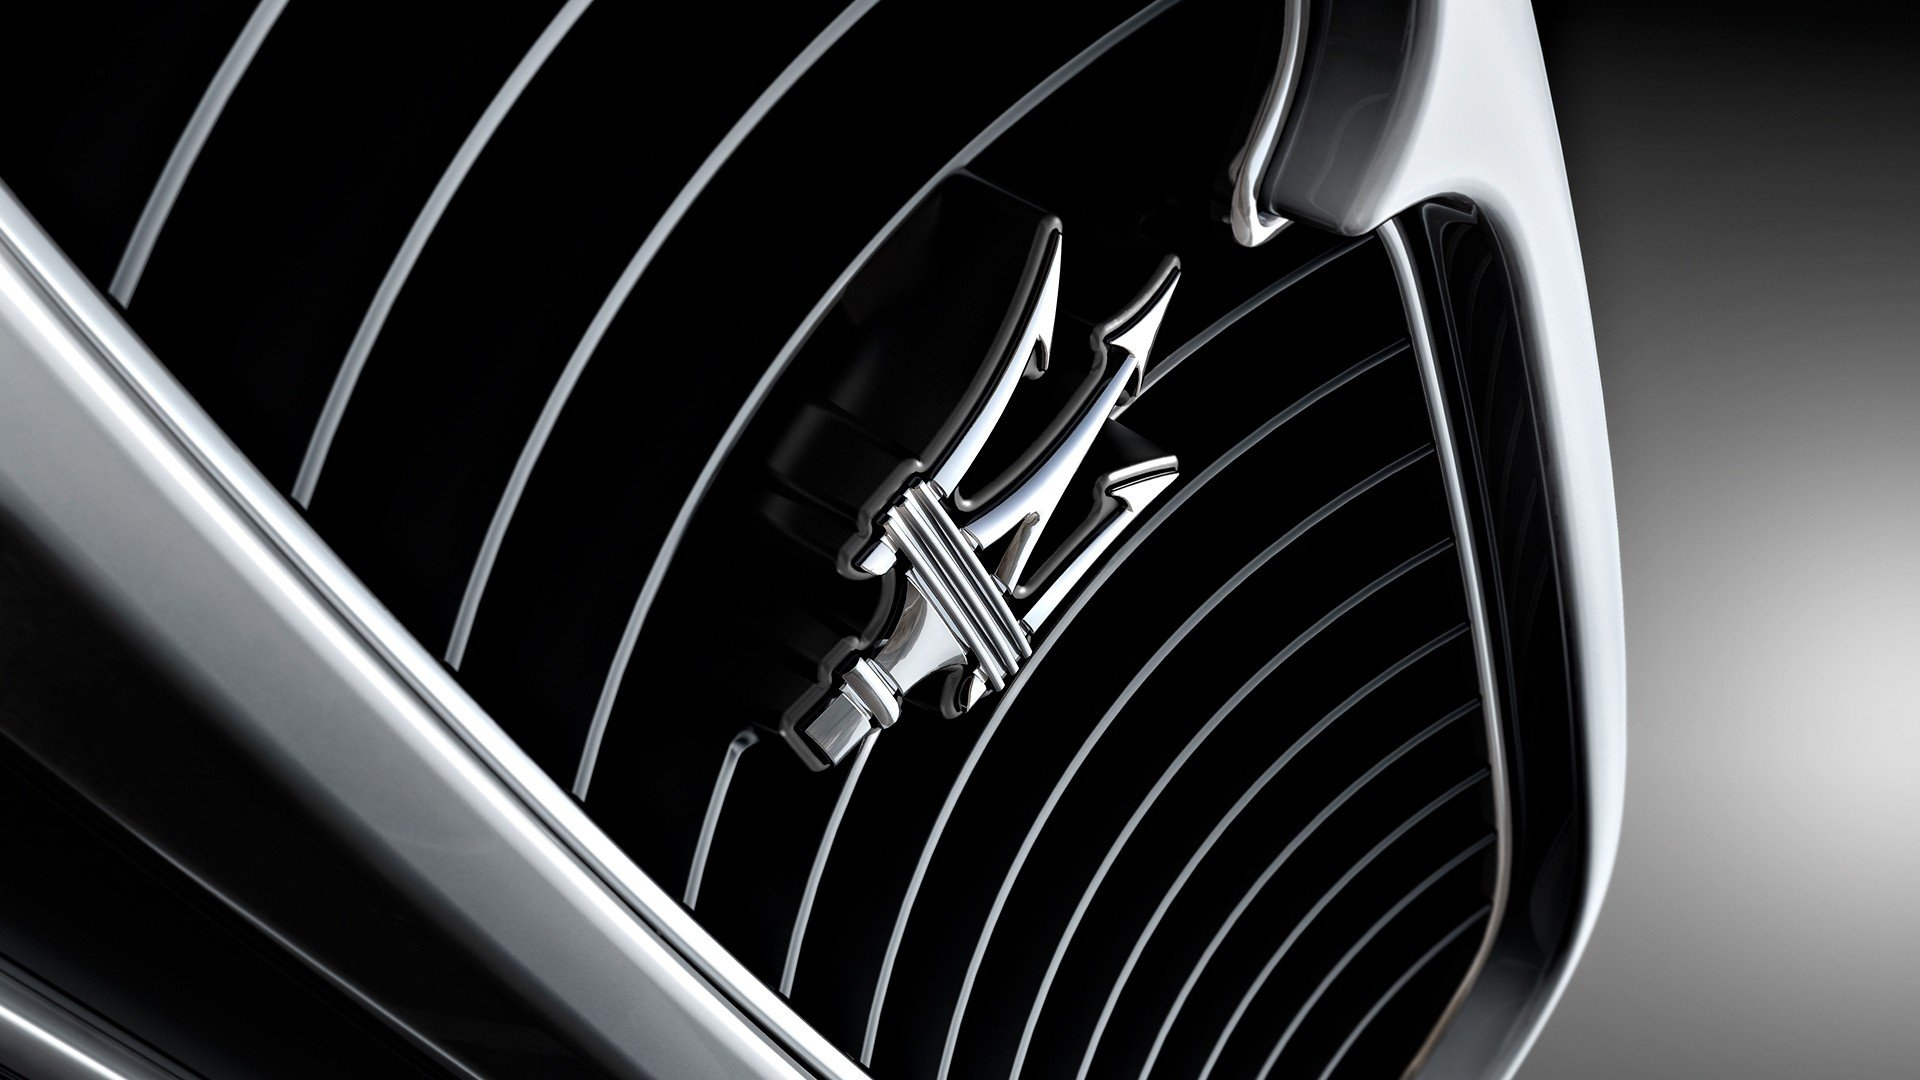 Maserati logo black hd wallpaper wallpaper 1920x1080 760560 1920x1080